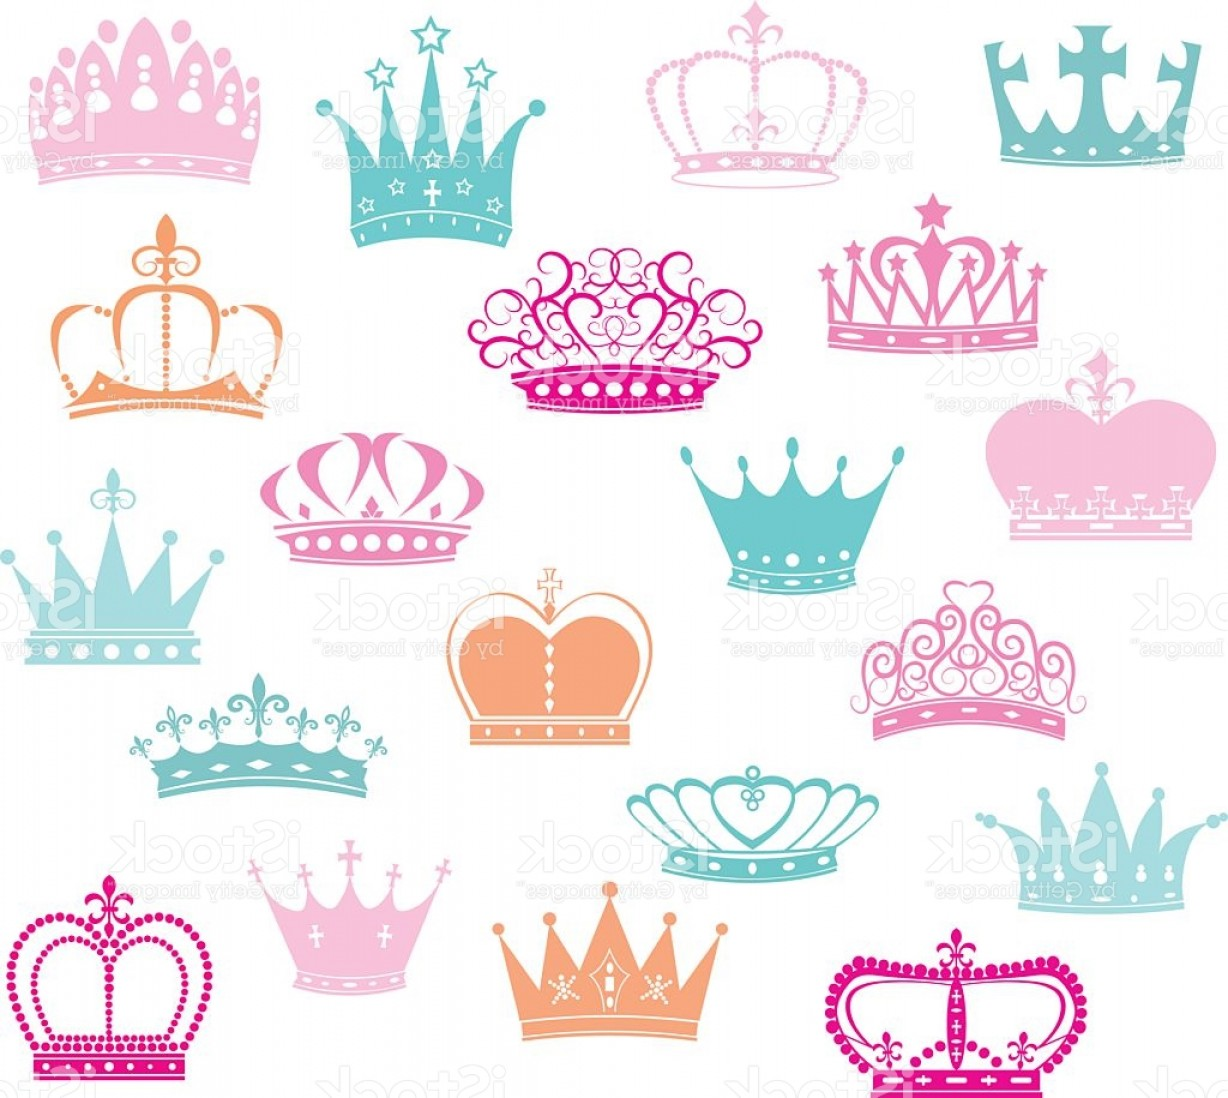 Baby Tiara Silhouette Vector: Crown Silhouette Princess Crown Gm